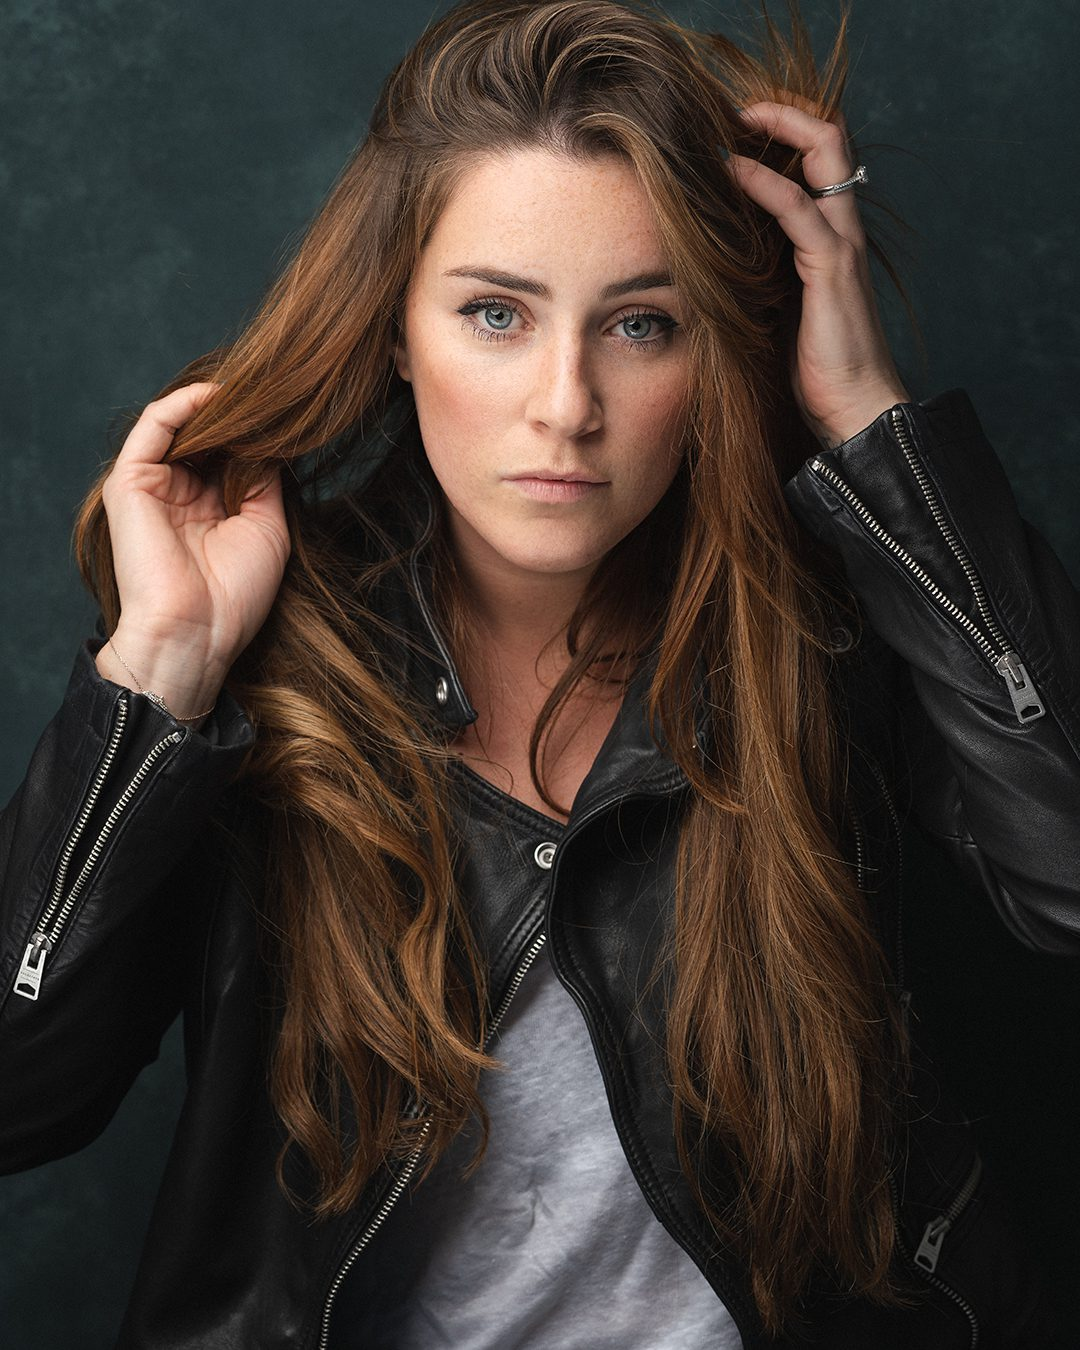 WEST END STAR LUCIE JONES GETS FESTIVE WITH EXCLUSIVE HEADLINE SHOWS